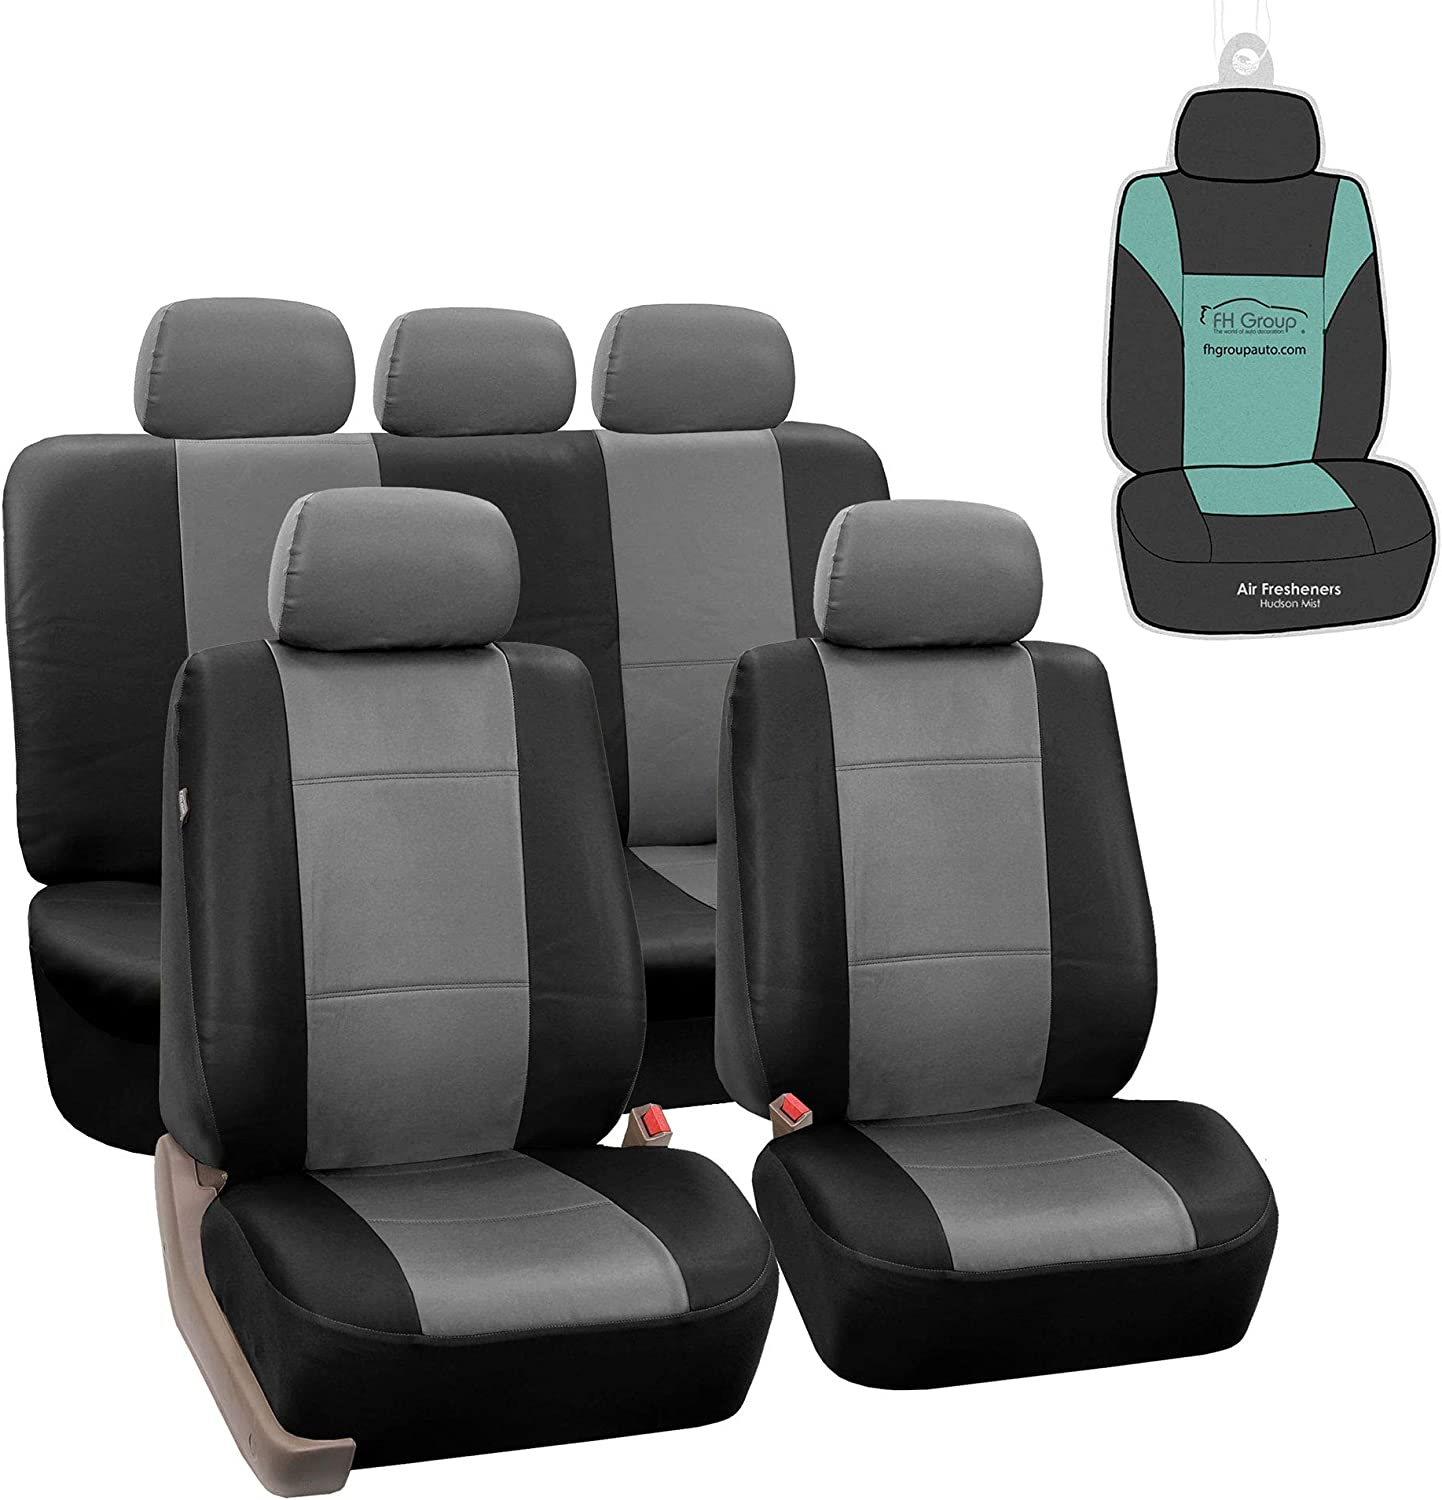 Fh Group Pu002115 Premium Pu Leather Seat Covers Gray Full Set With Gift Universal Fit For Cars Trucks And Suvs Automotive Amazon Com